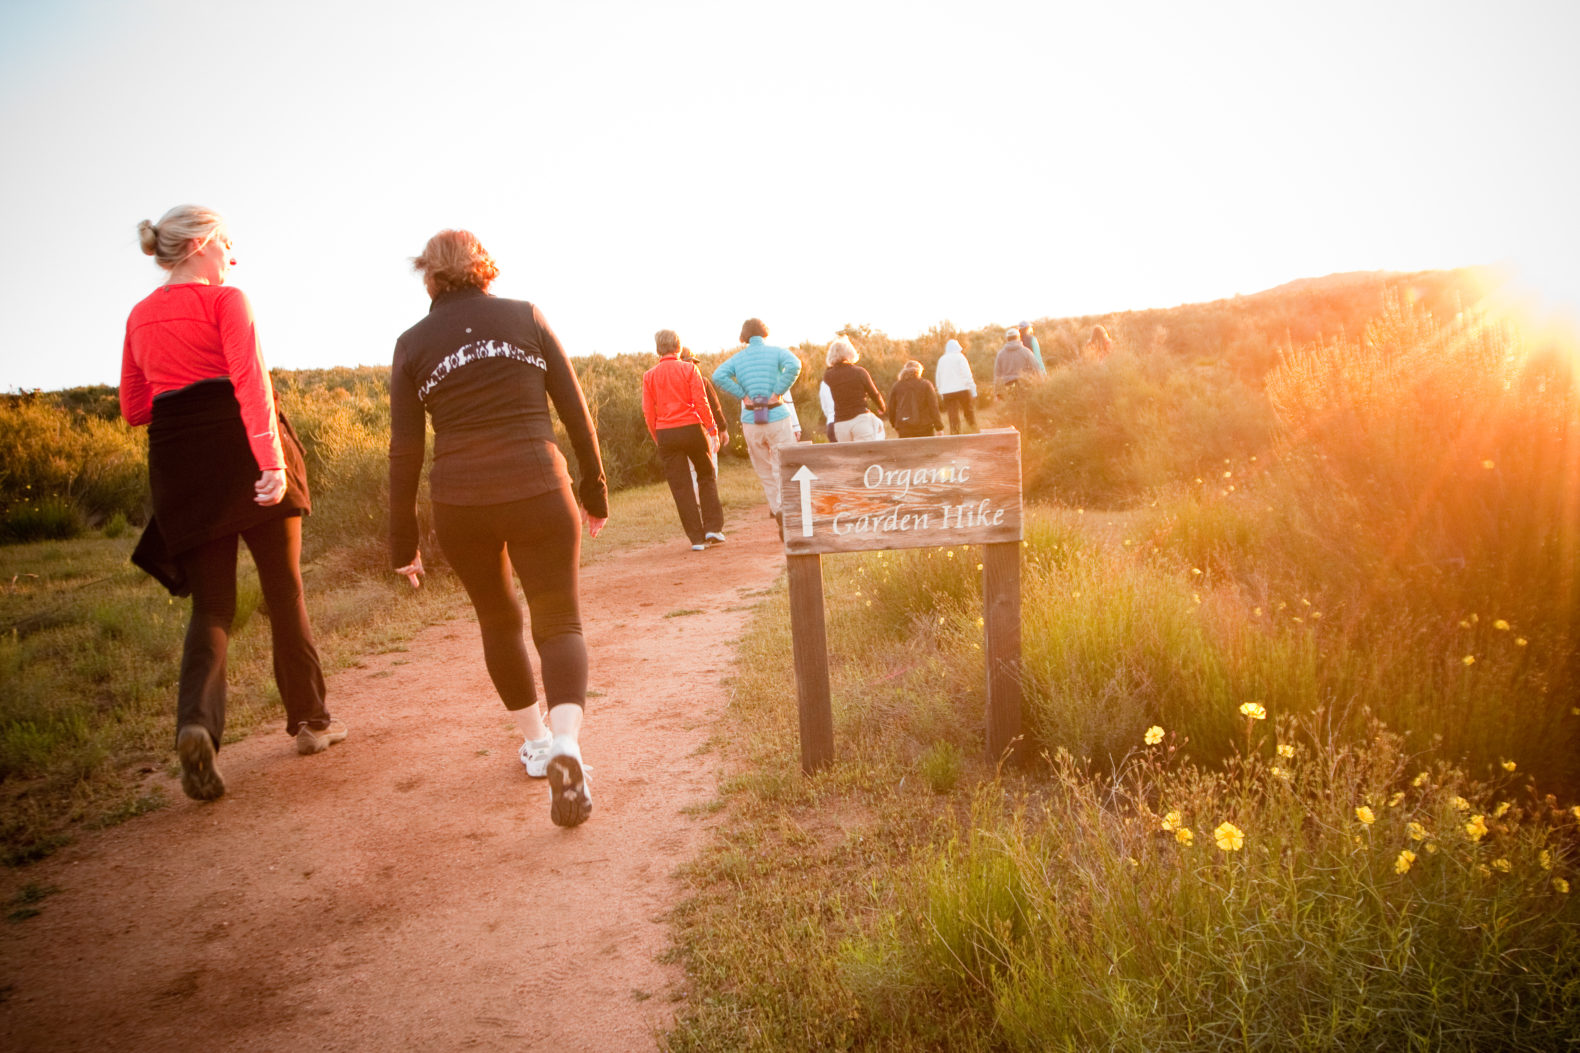 organic-garden-hike-group-activities-natural-environment-experience-sunset-rancho-la-puerta-mexico-fitness-resort-spa-hotel